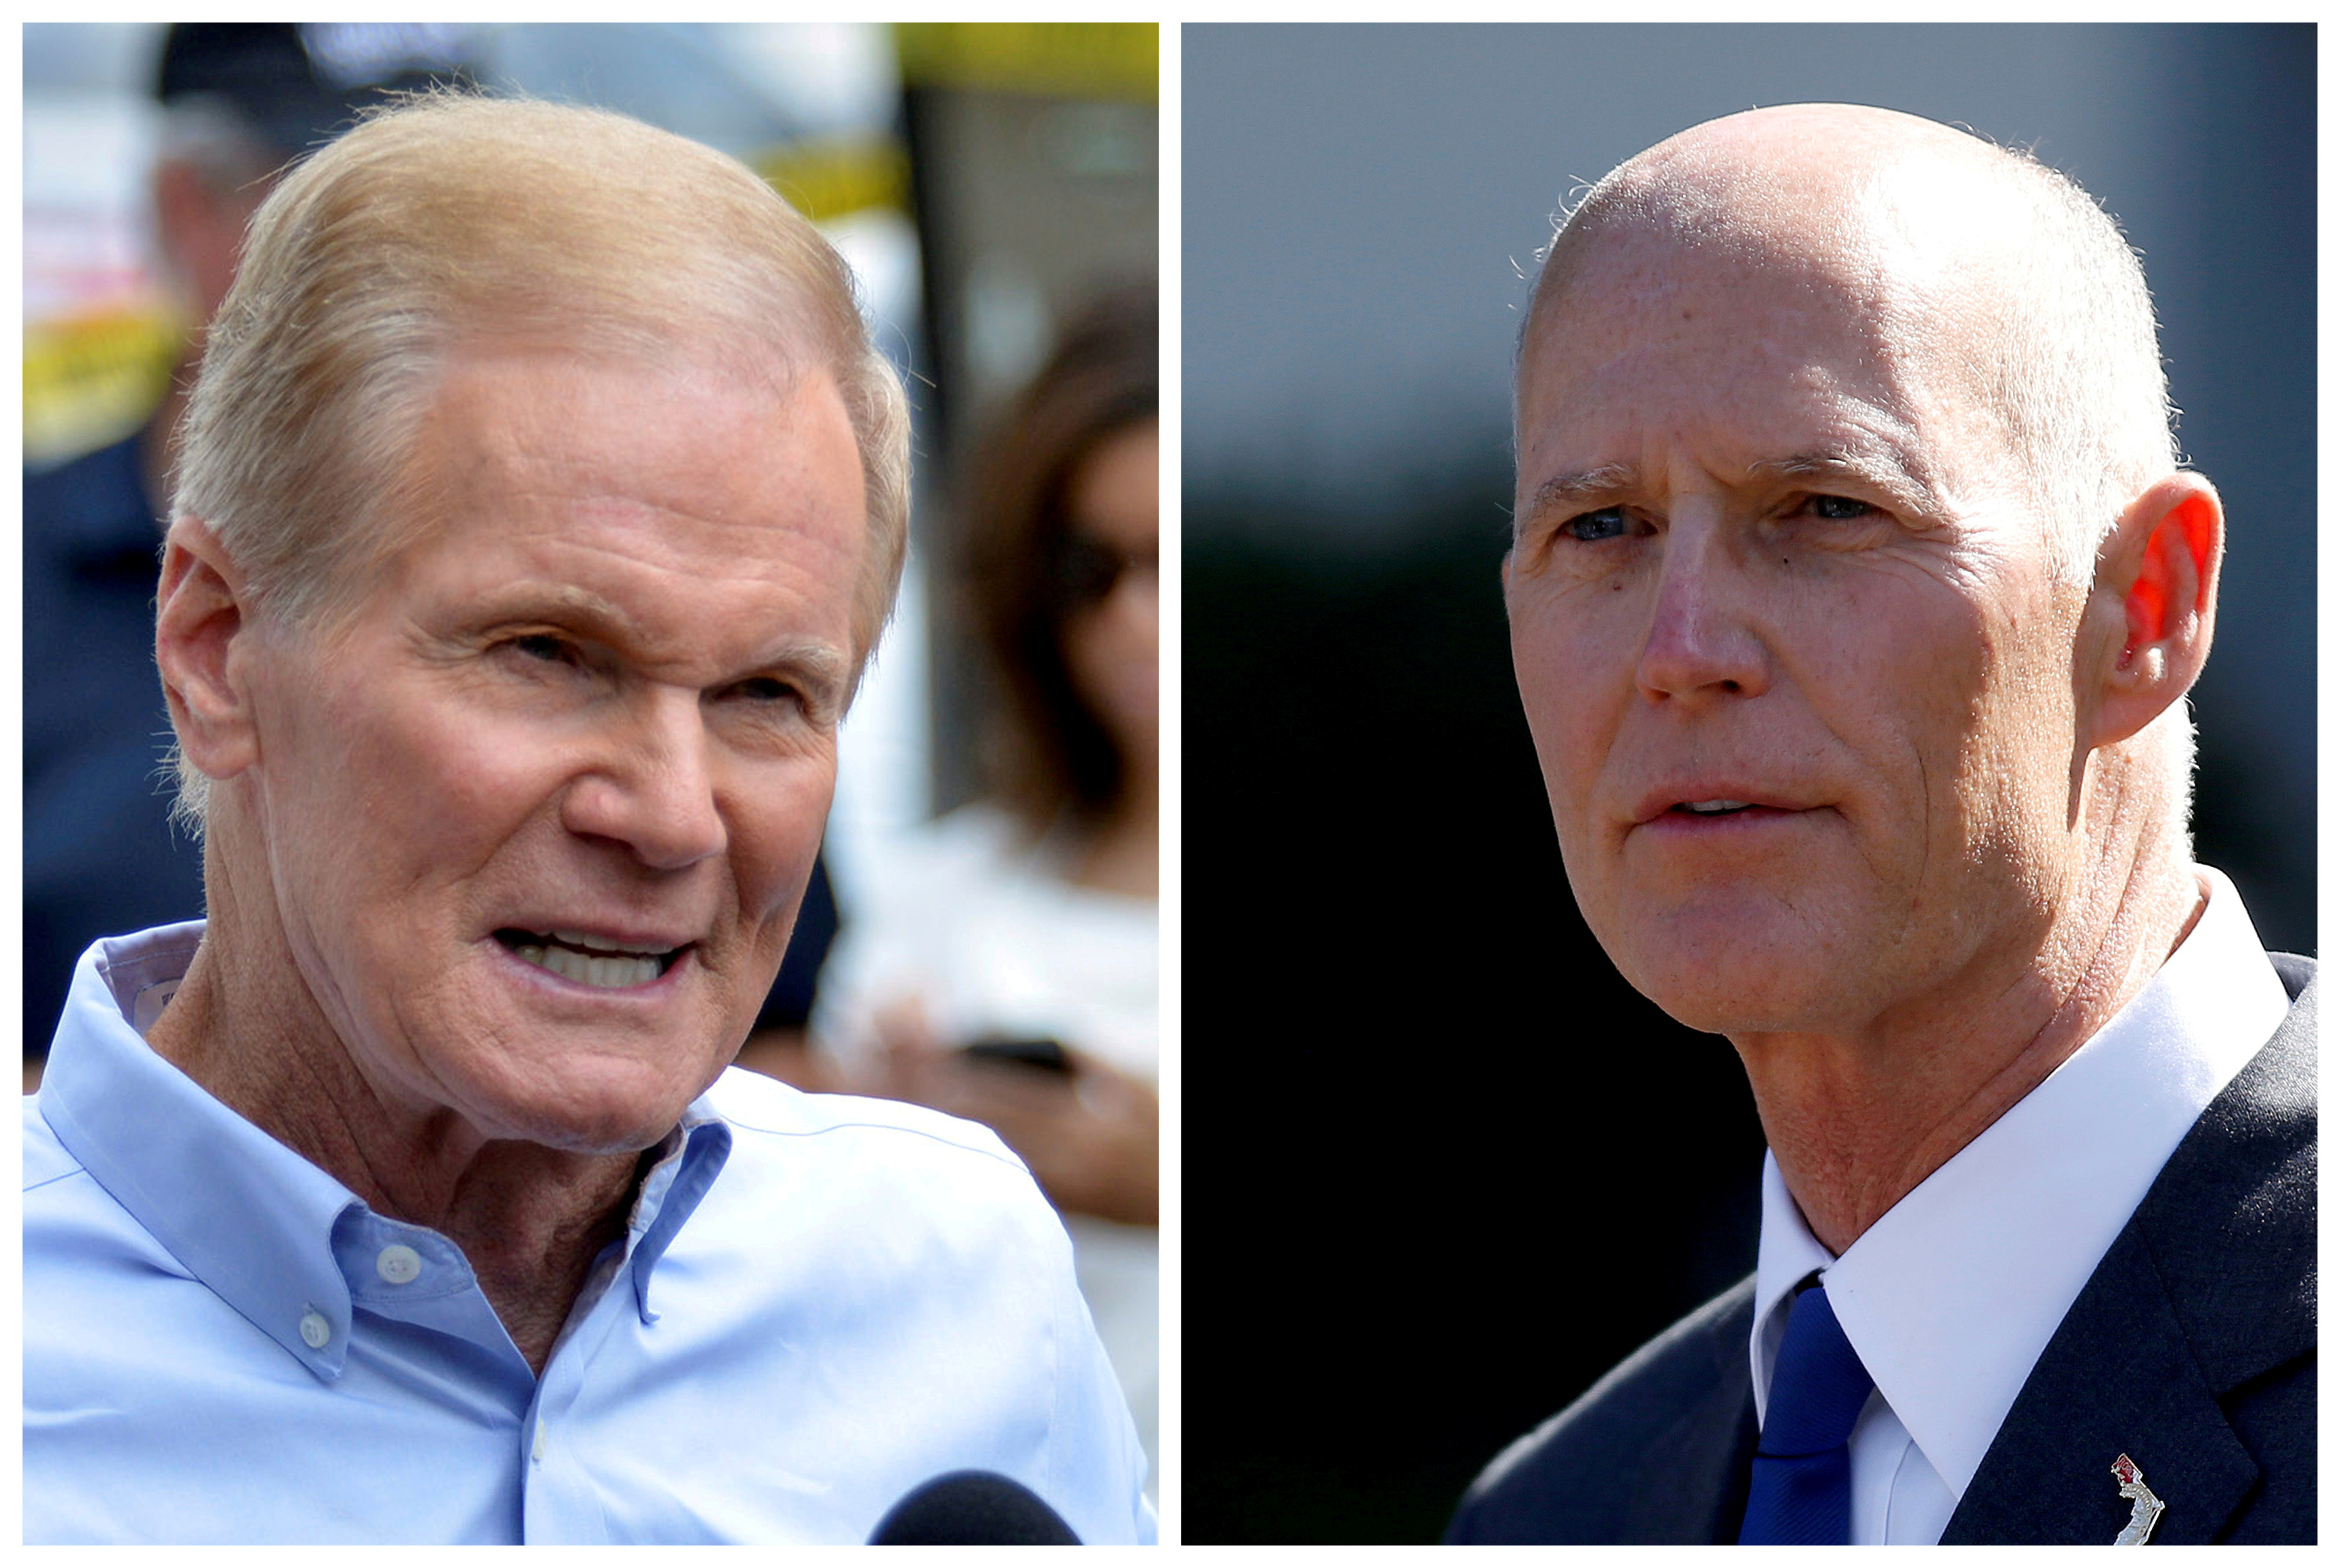 FILE - U.S. Senator Bill Nelson (L) speaks in Orlando, Florida, U.S., June 12, 2016 and Florida Governor Rick Scott appears in Washington, DC, U.S., Sept. 29, 2017 respectively.